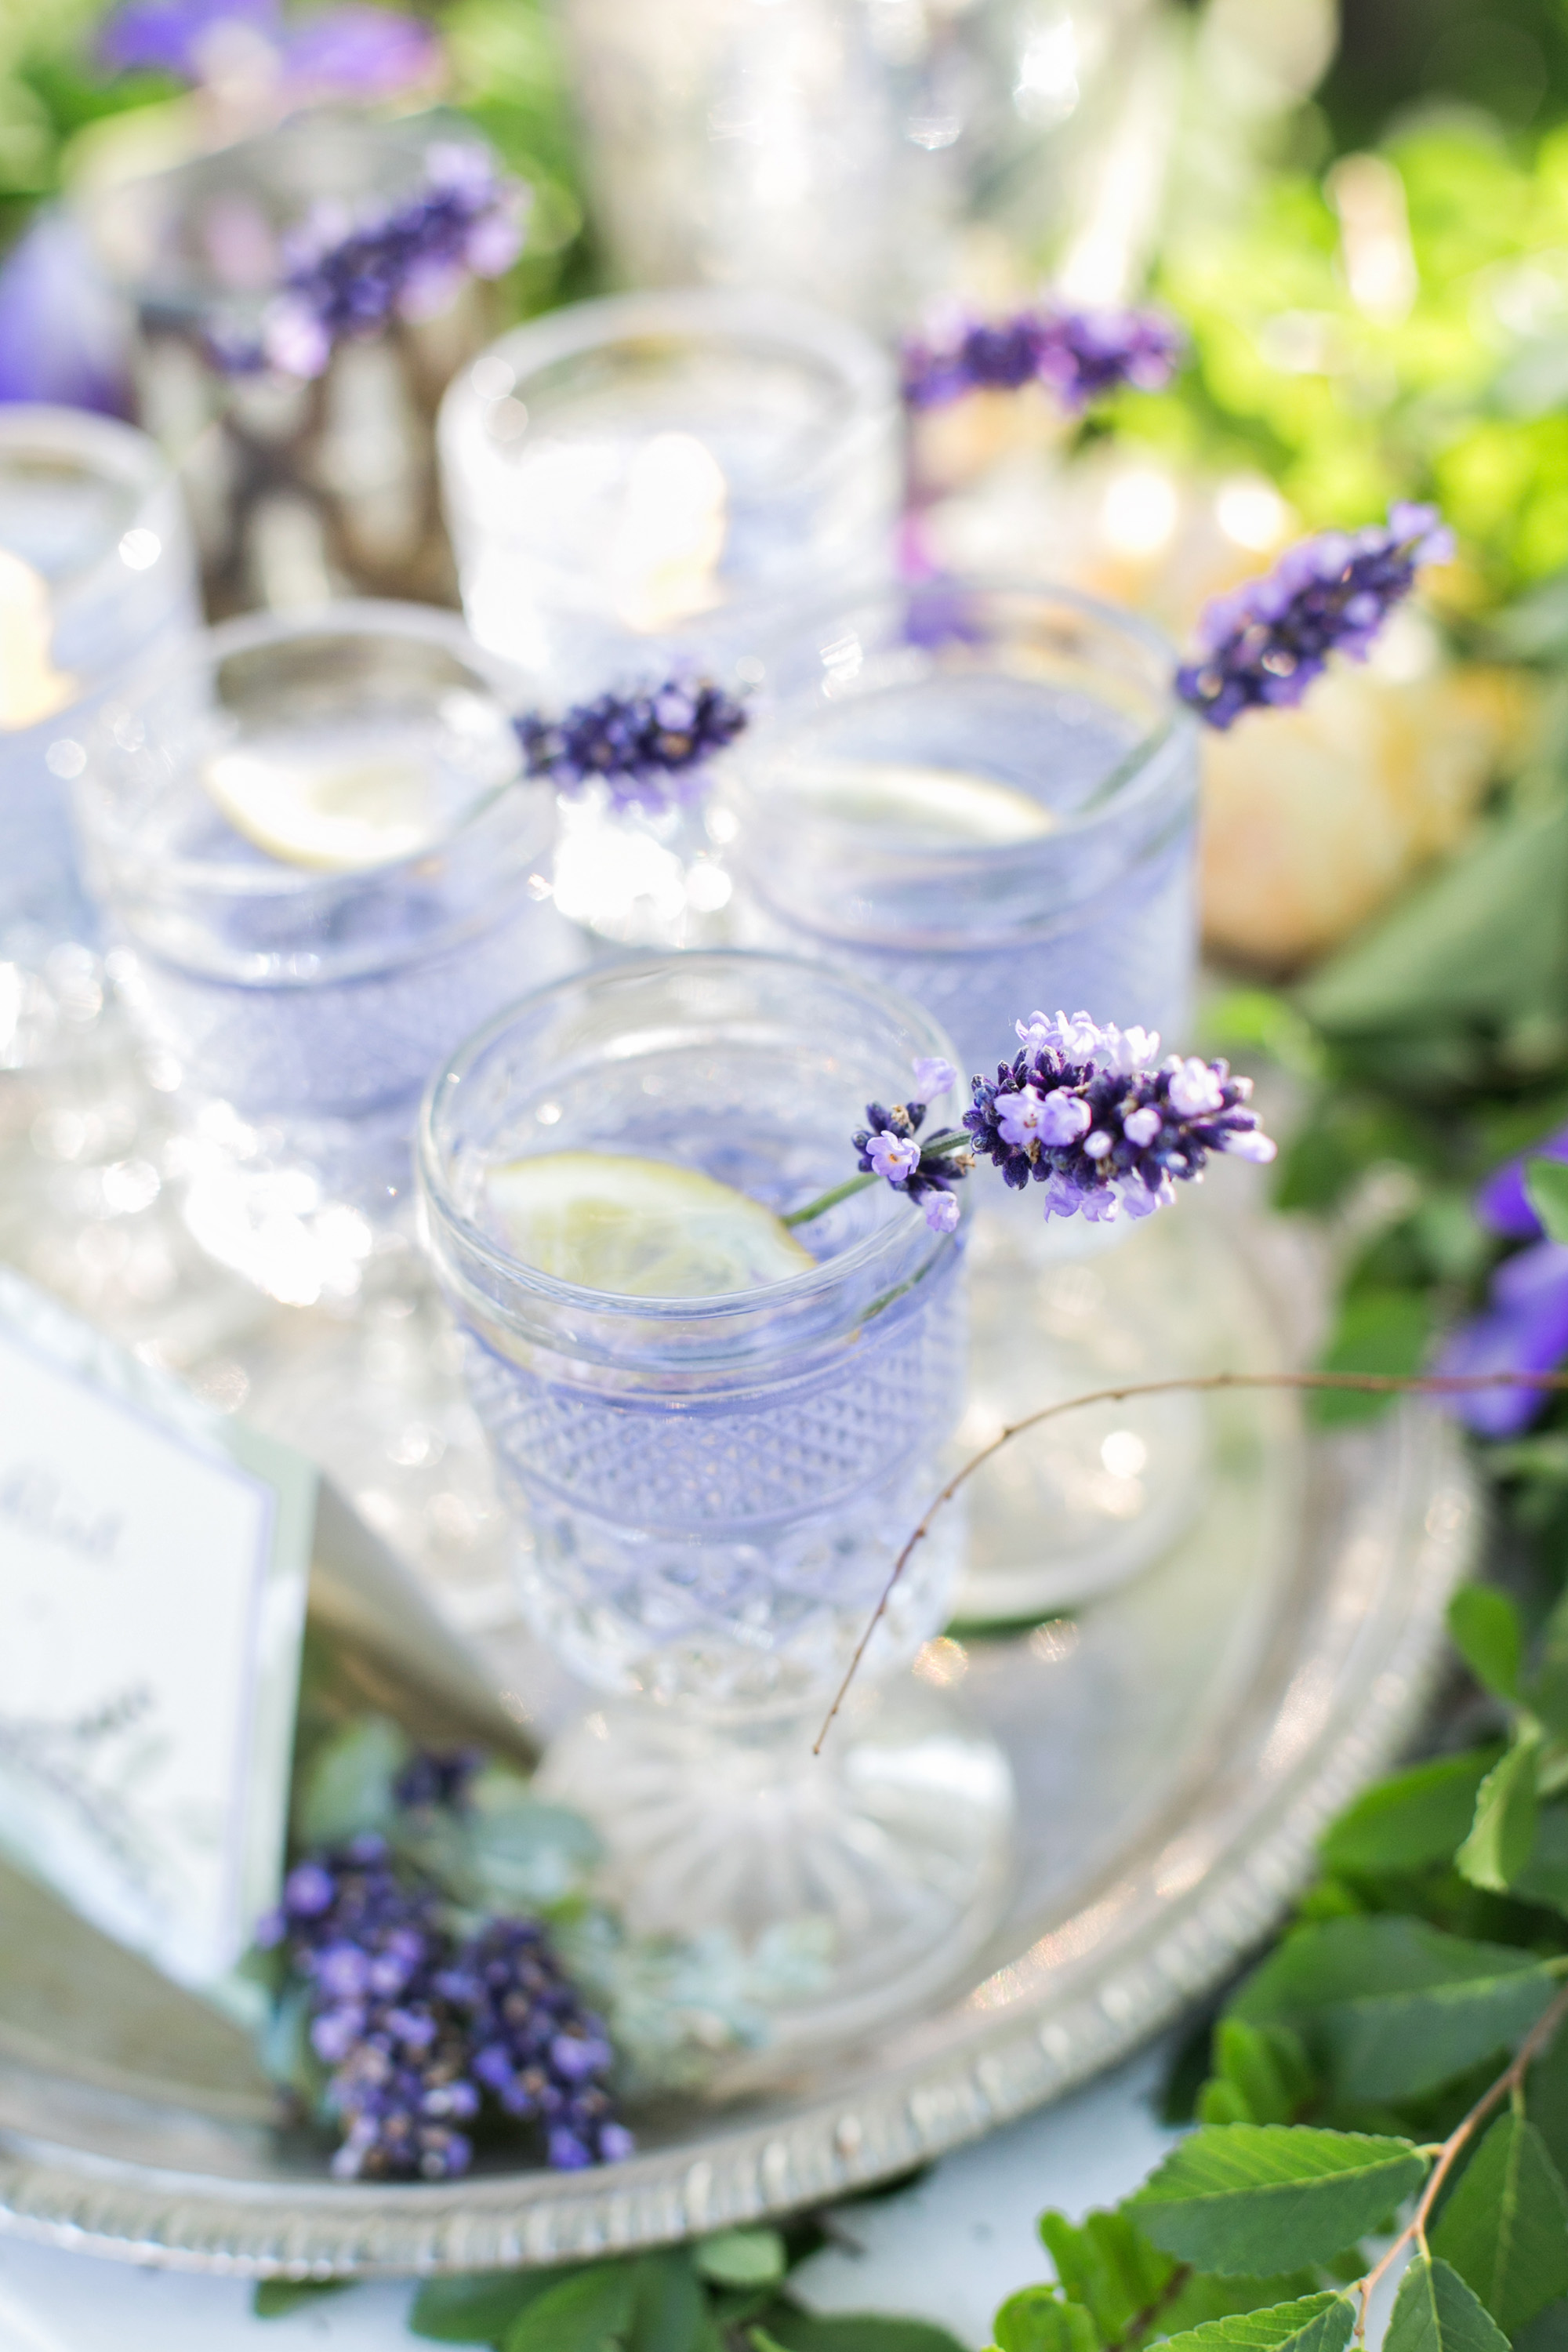 homestead-wilshire-ranch-lavender-gin-wedding-cocktail-carrie-vines-008.jpg